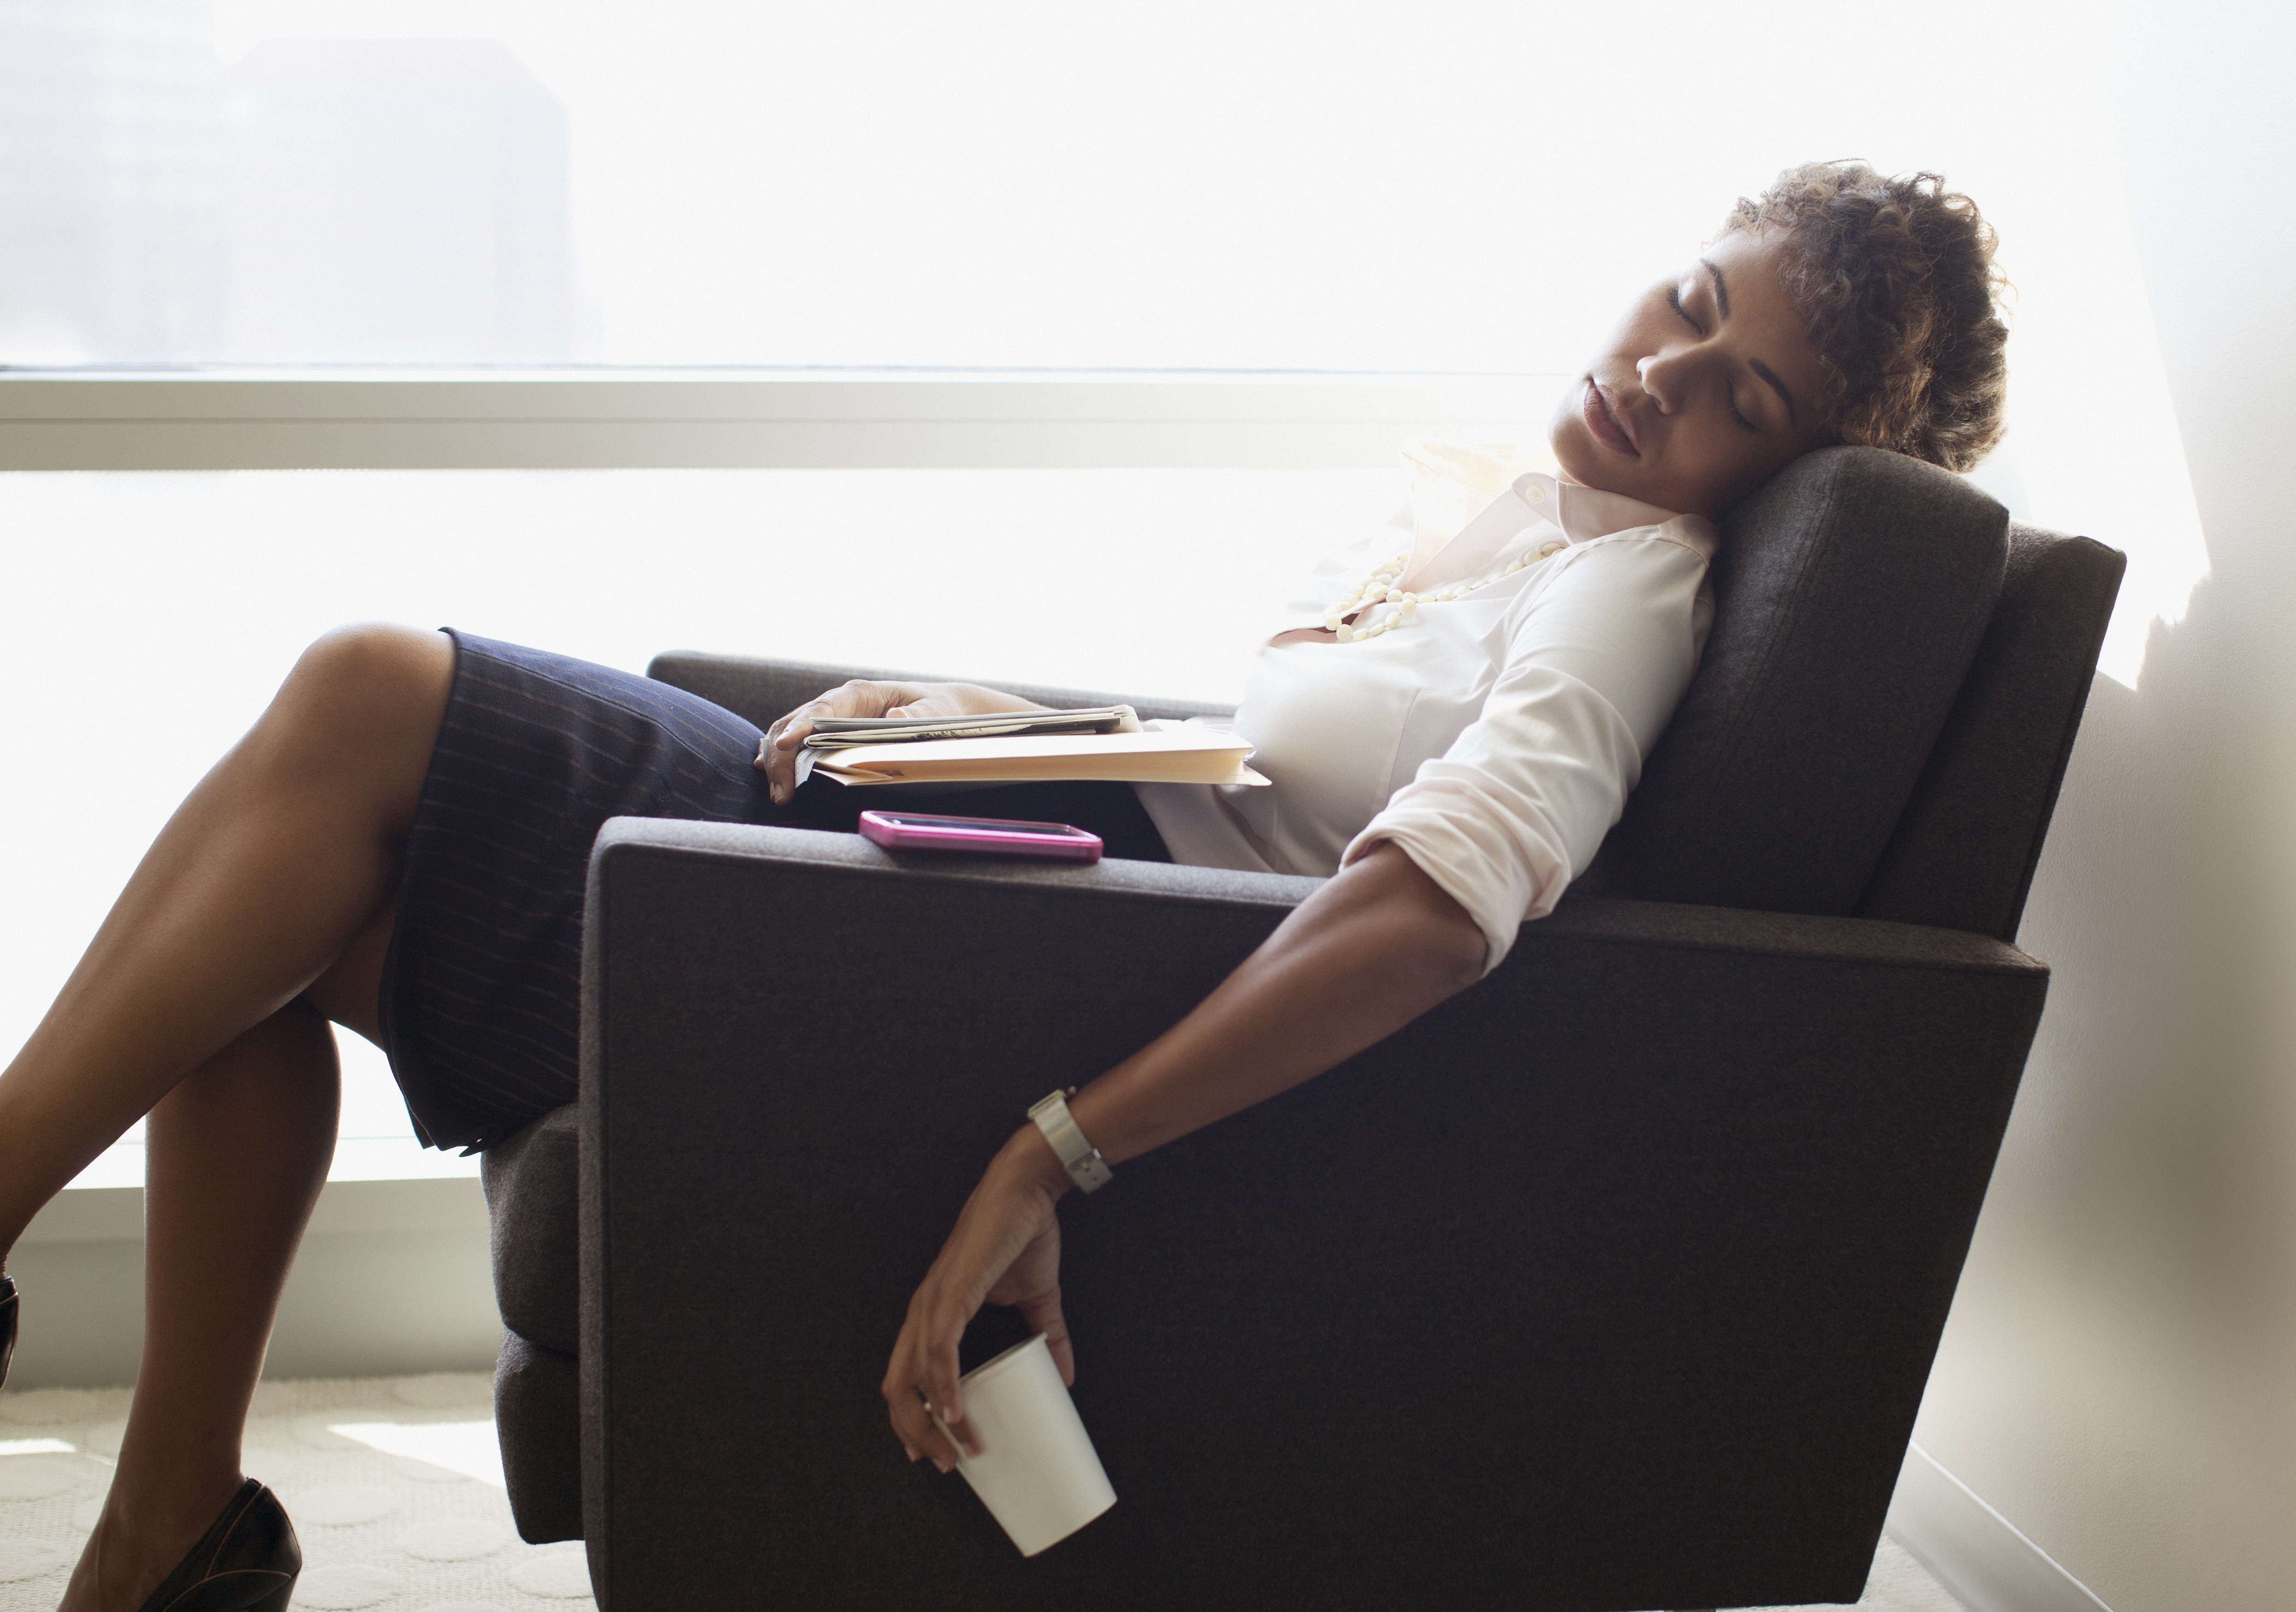 A young woman sleeping in a chair